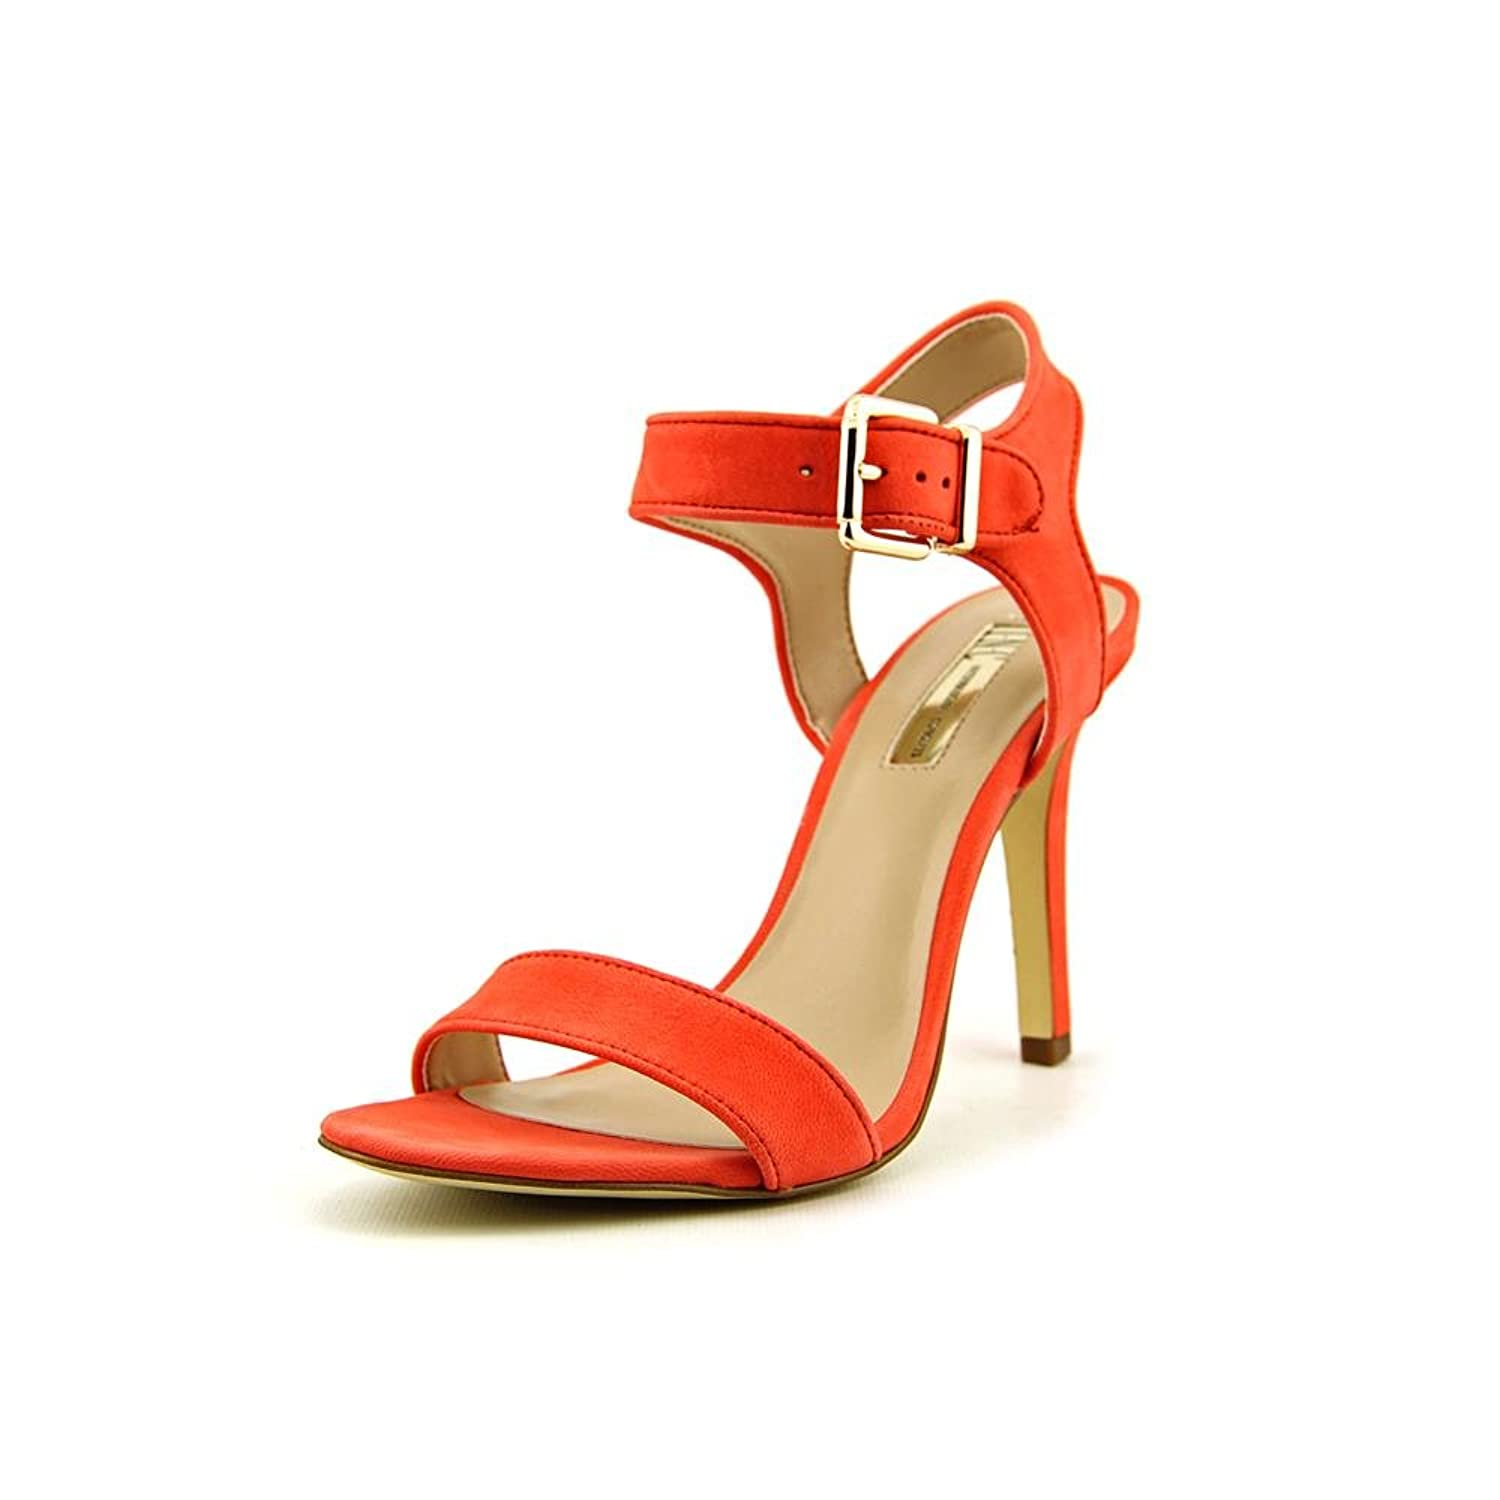 INC International Concepts Women's Jemiah Sandals Orange 9.5M